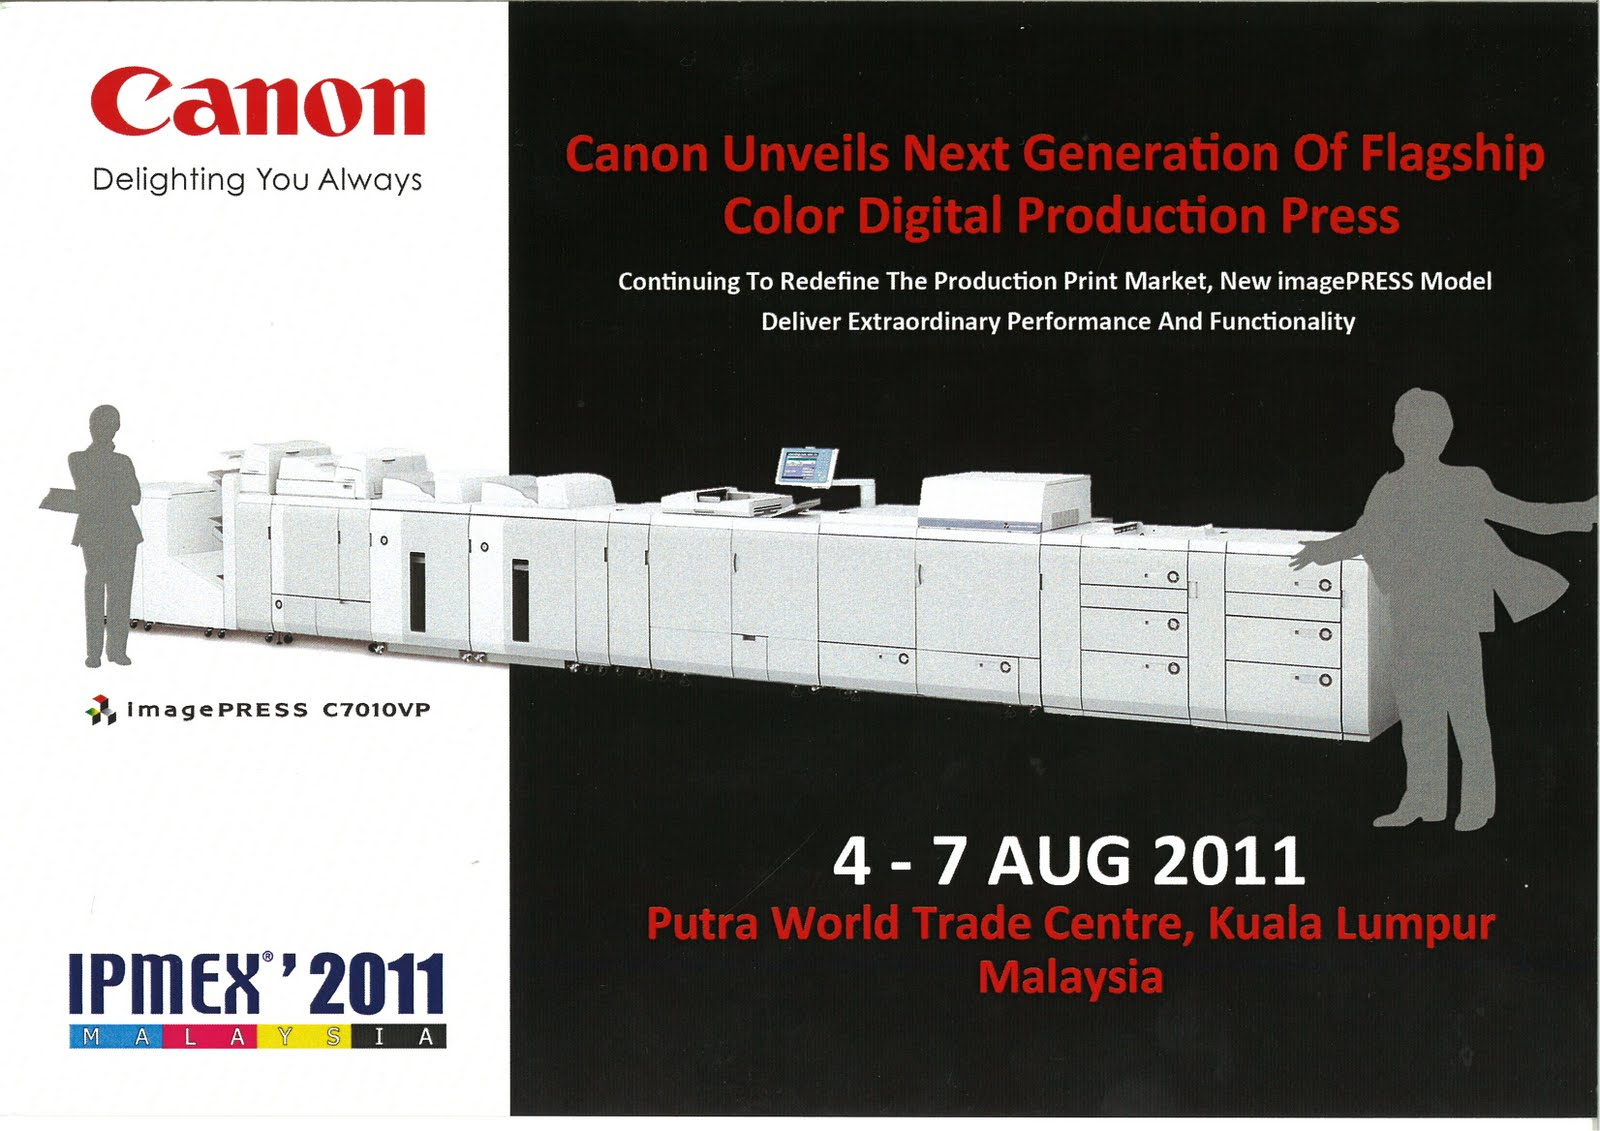 ipmex 2011 invitation from canon marketing malaysia sdn bhd large format printers. Black Bedroom Furniture Sets. Home Design Ideas